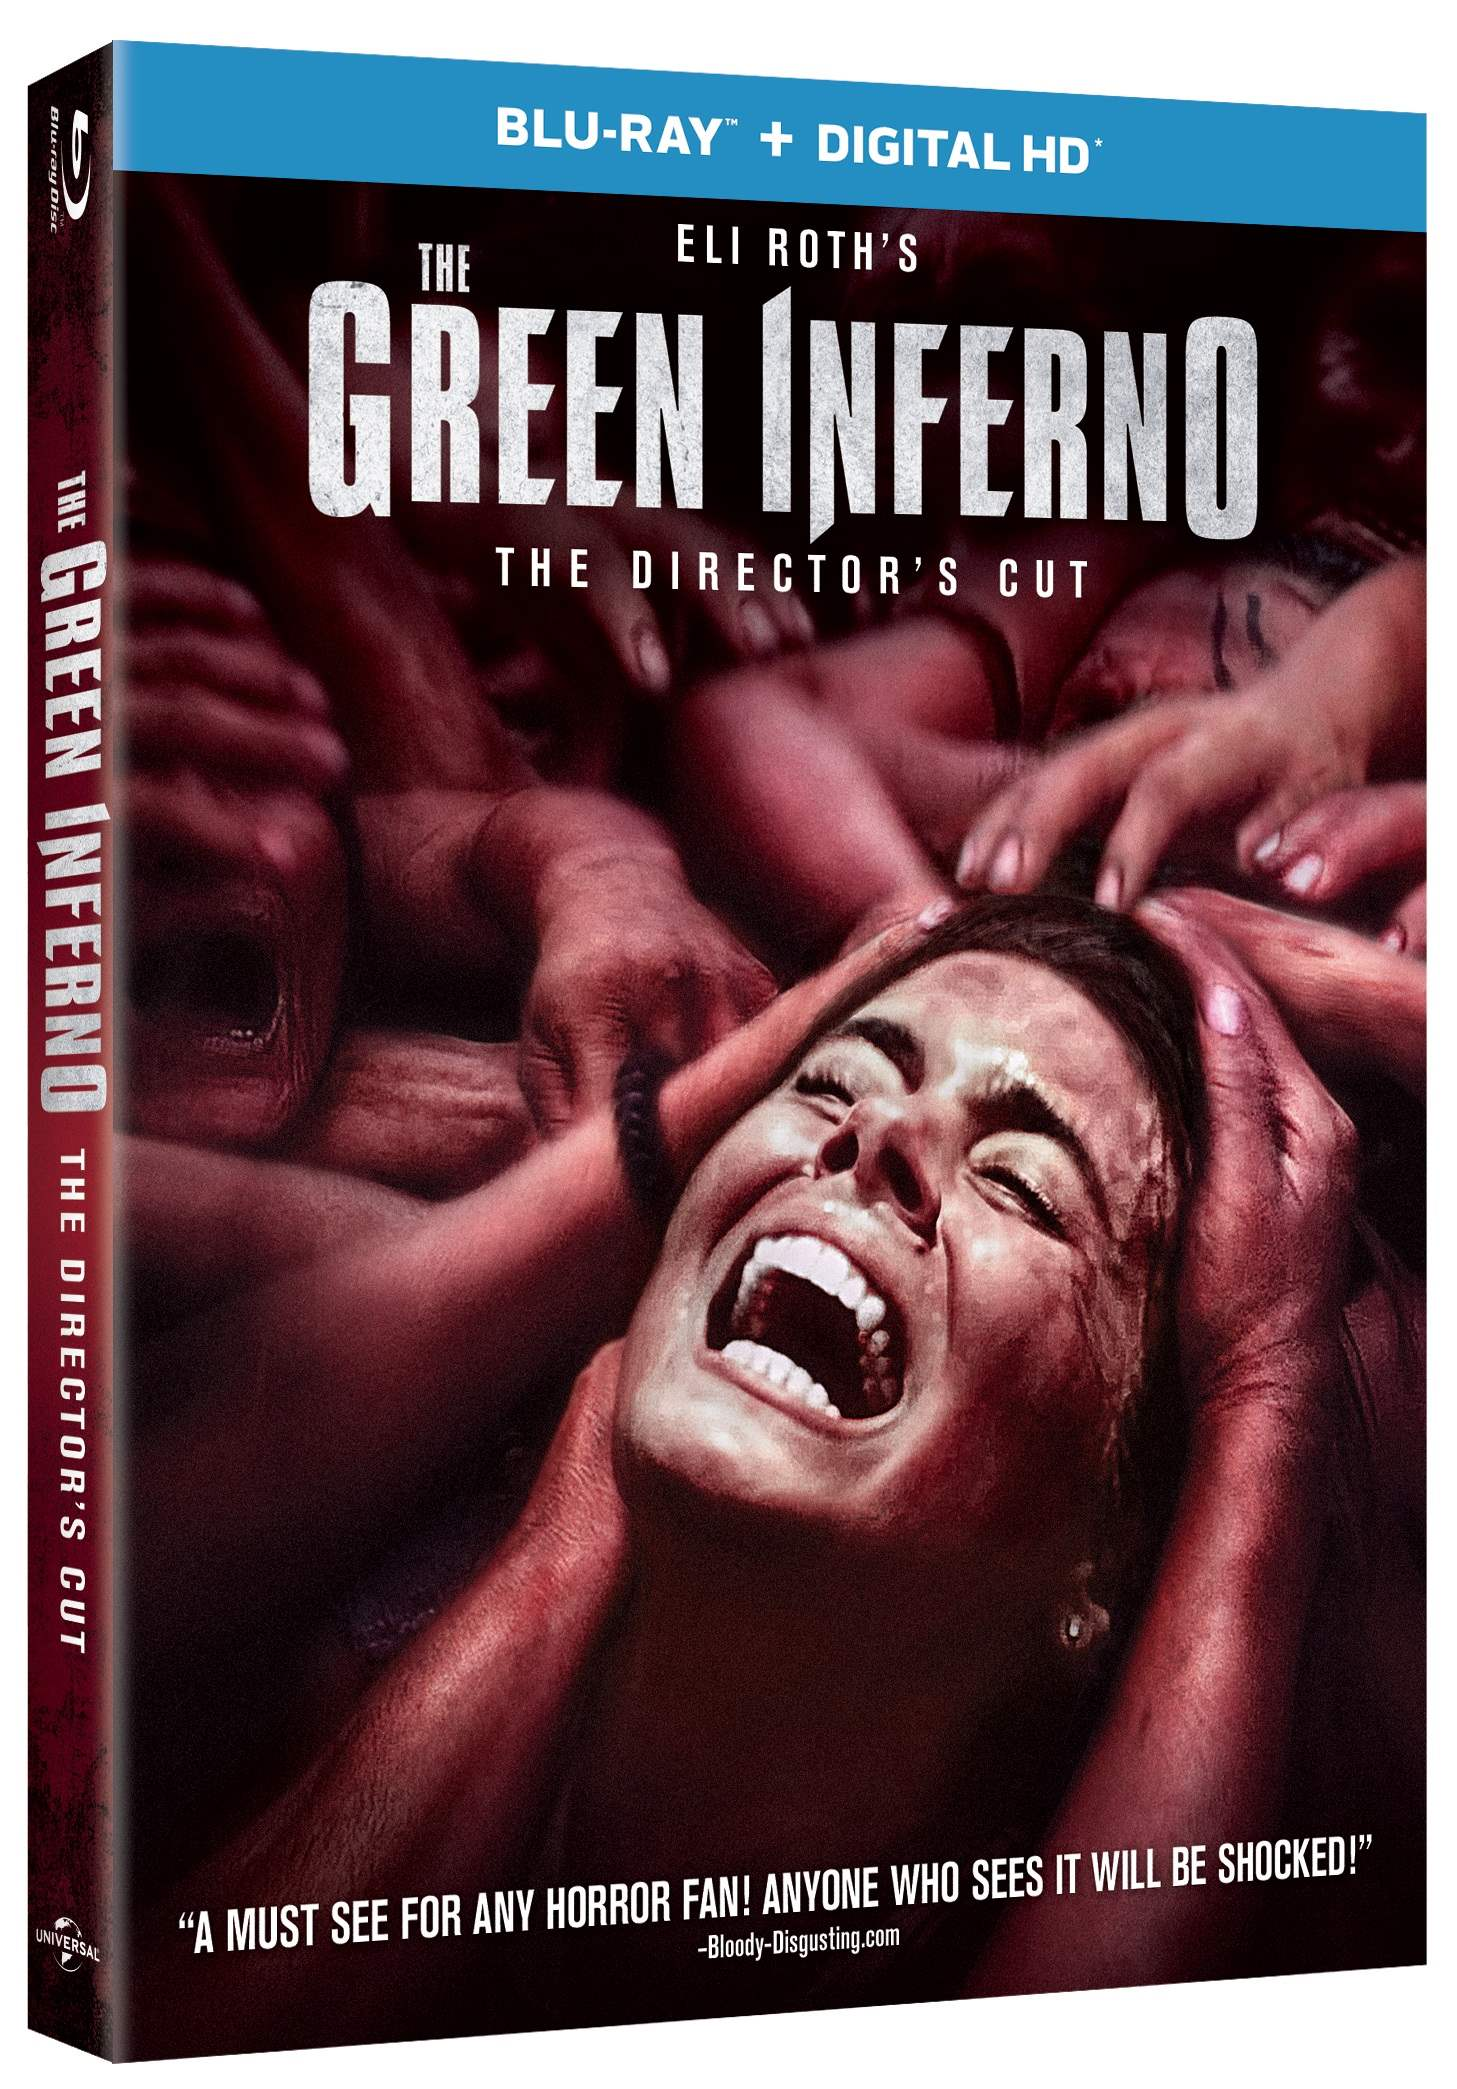 Blu Ray copy of Eli Roth's The Green Inferno for giveaway